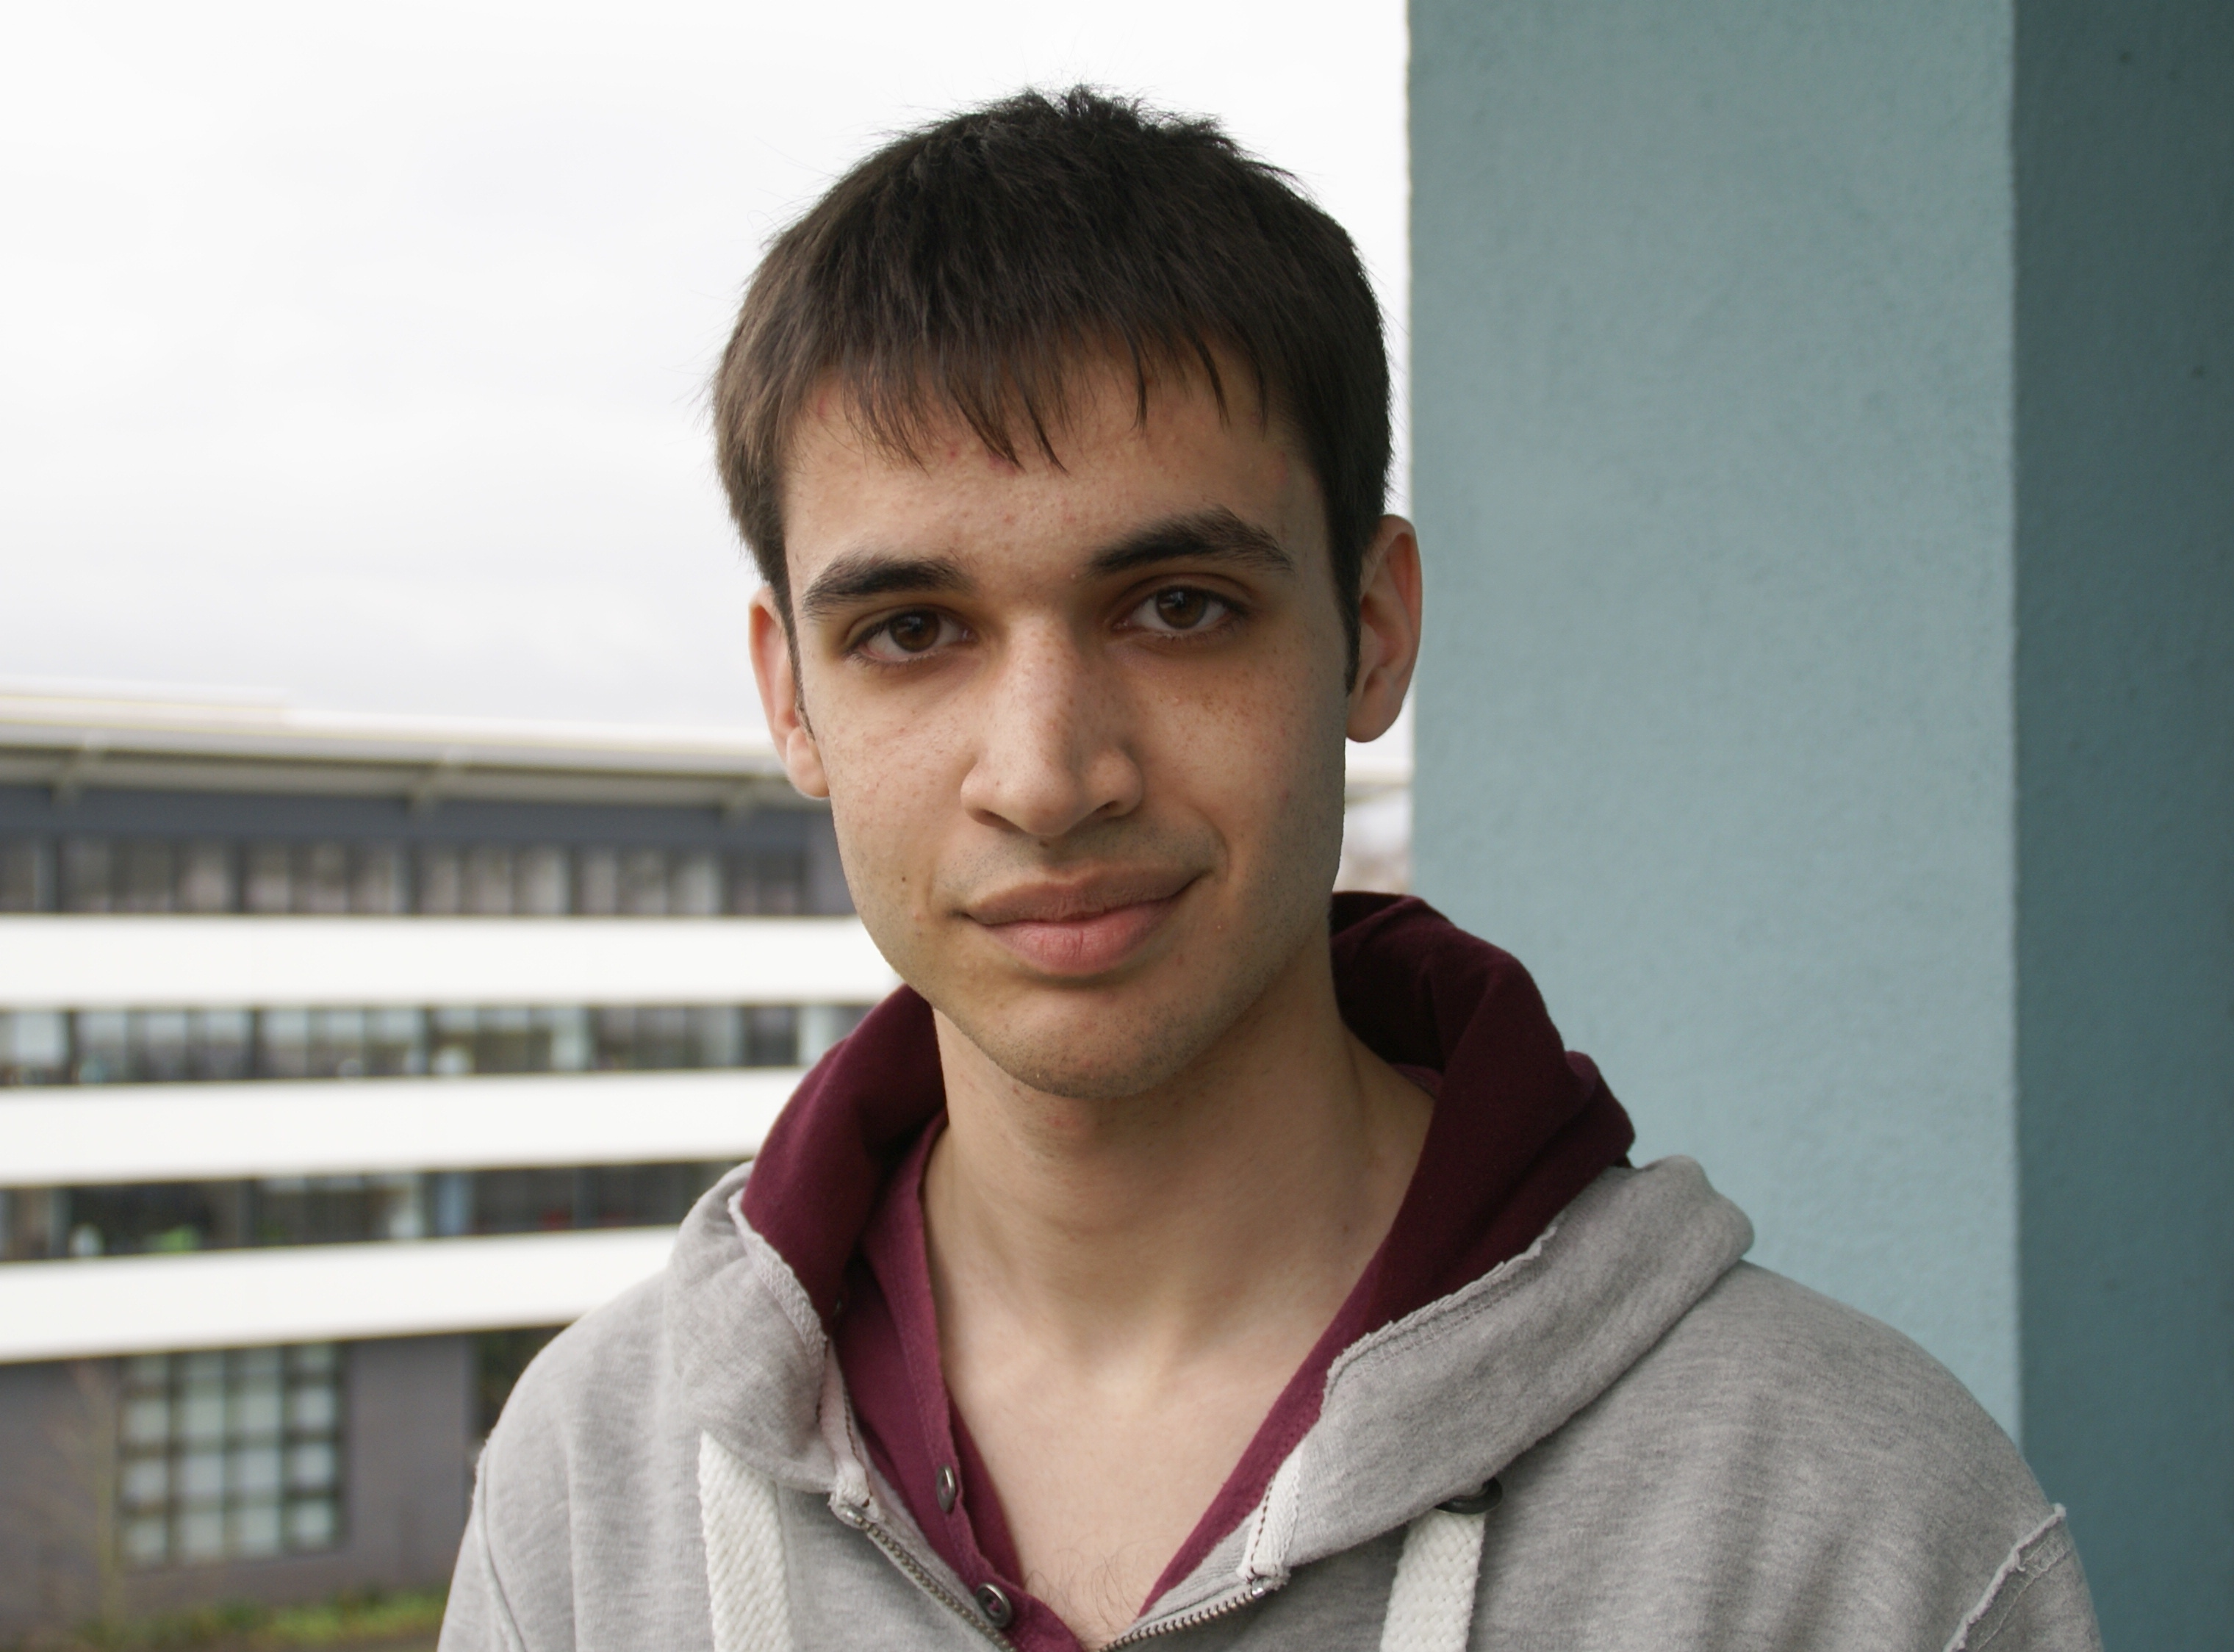 Julian Bhardwaj, a first year Discrete Mathematics student, has successfully made it through to the Grand Final of the Cyber Security Challenge which will ... - dsc09412_crop